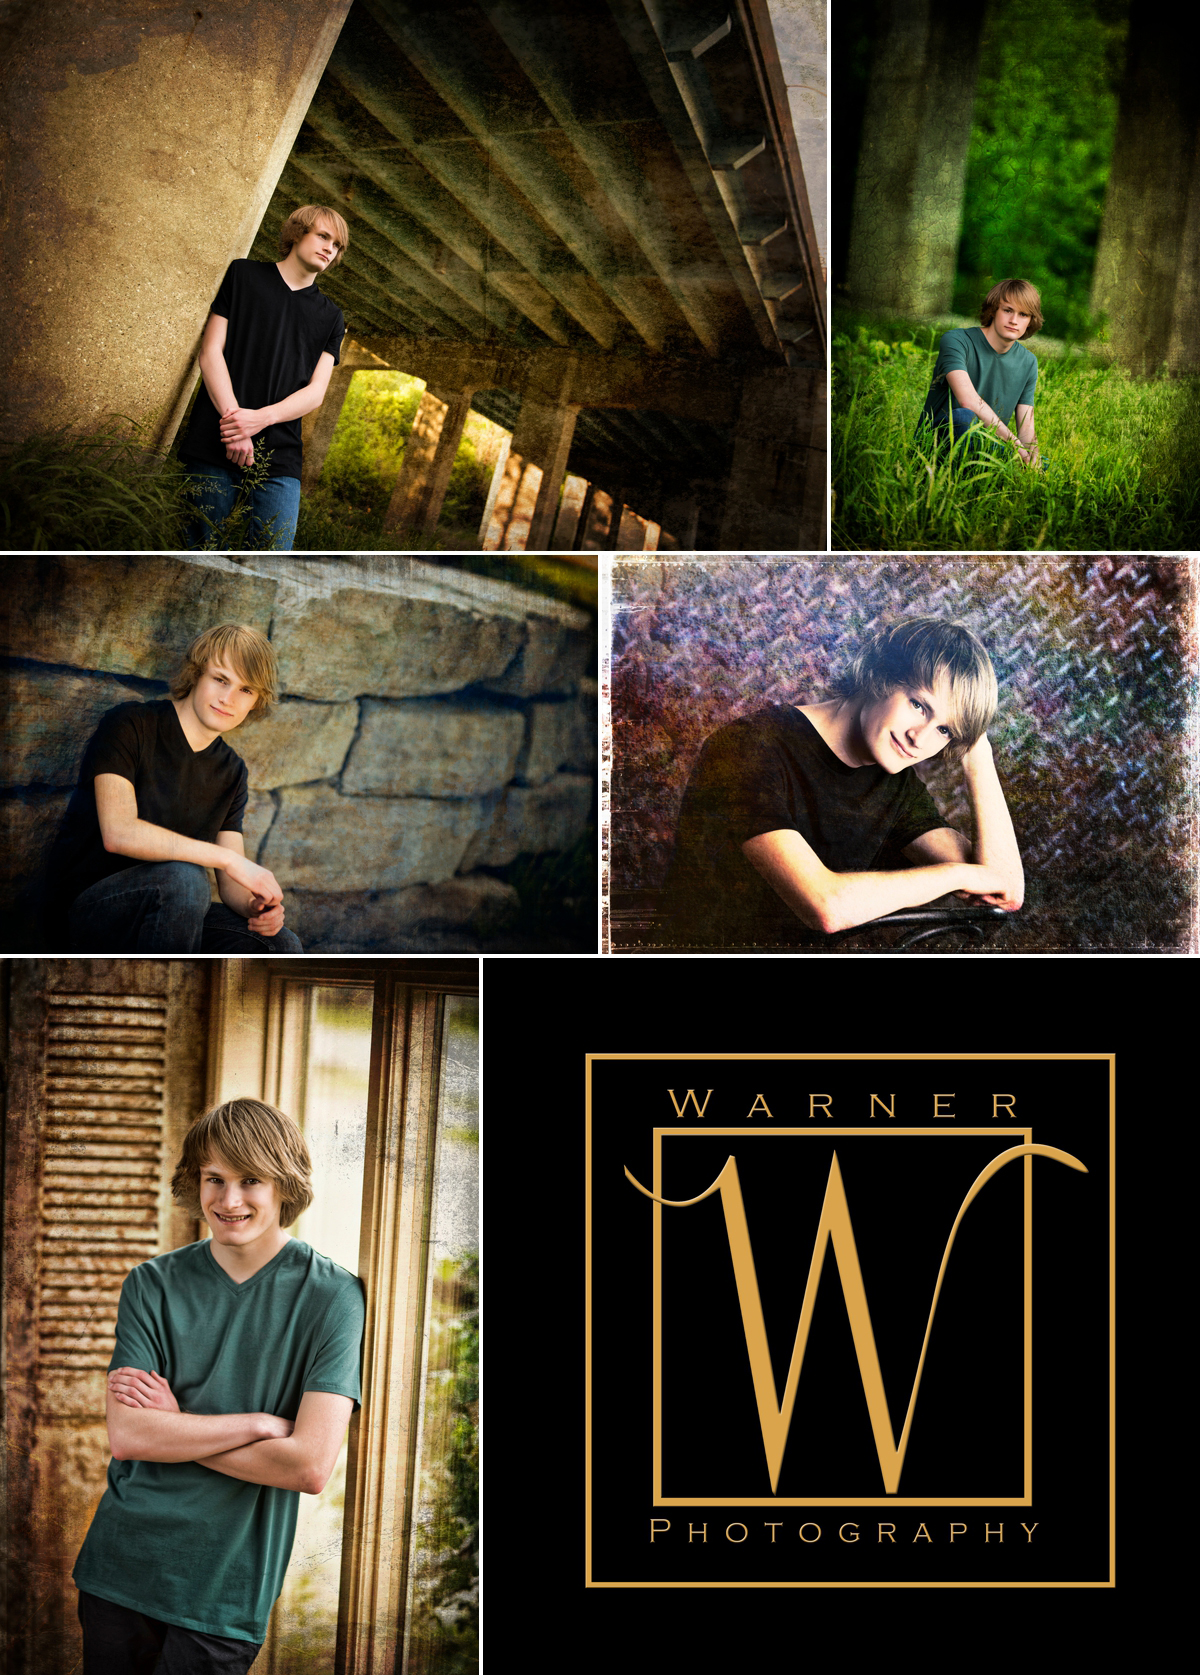 Matthew-senior-collage-Warner-photography-midland-michigan